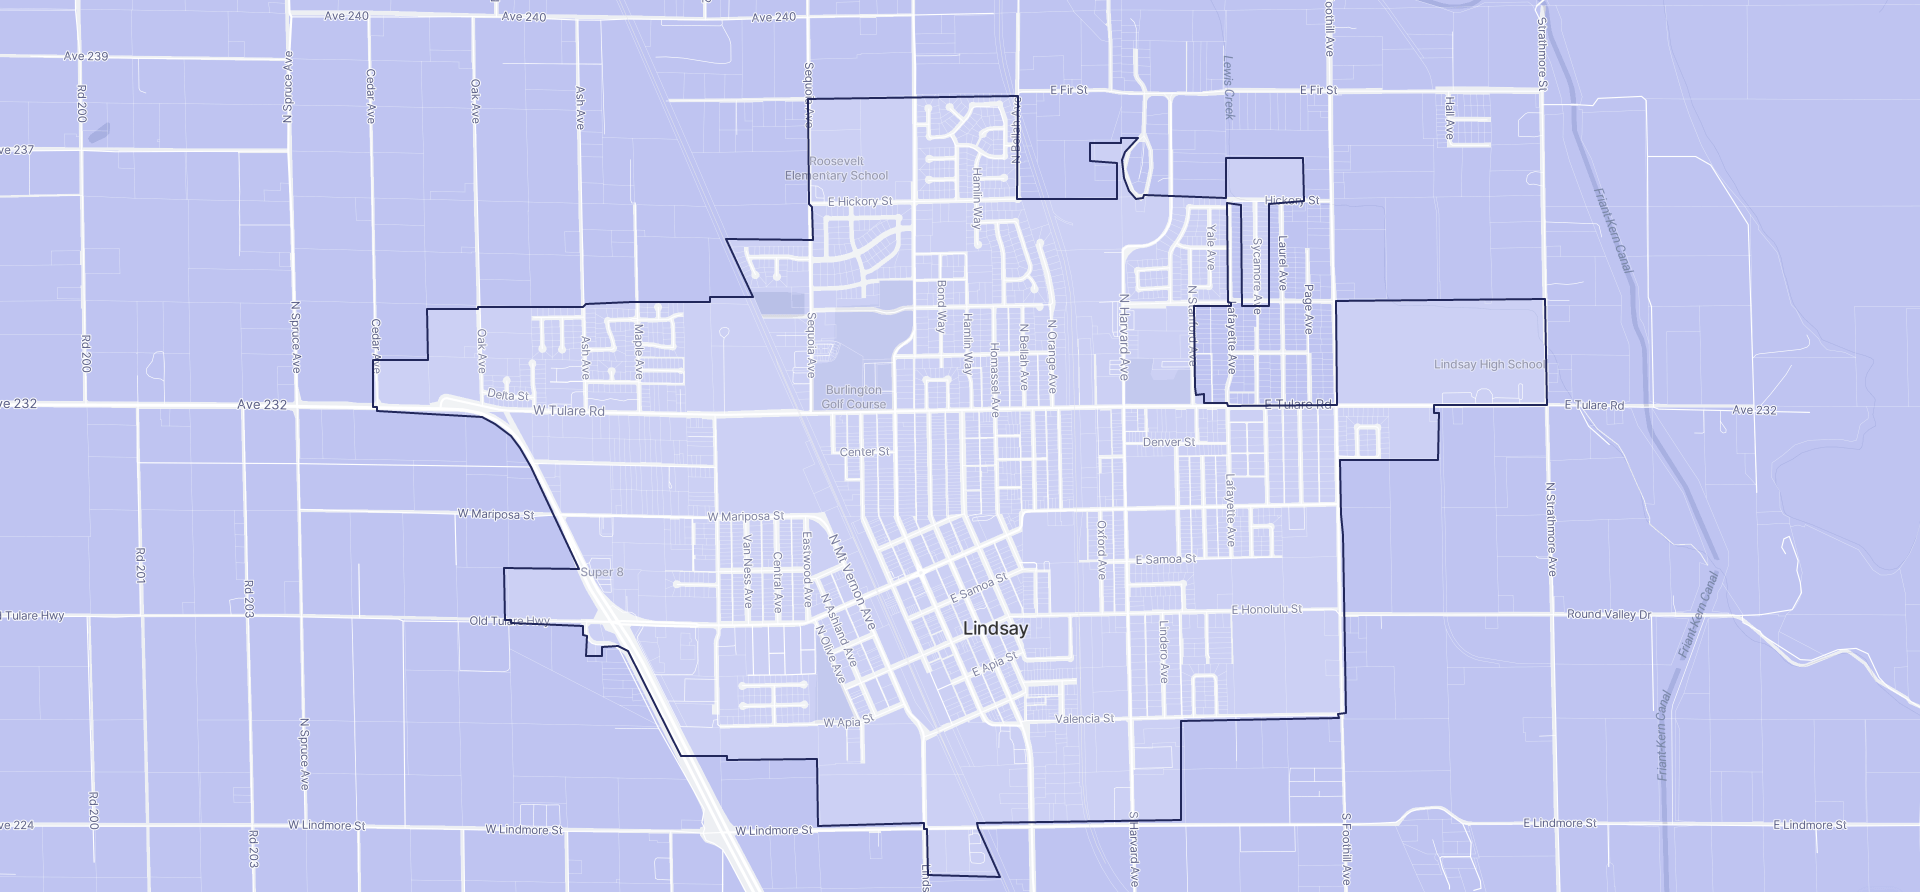 Image of Lindsay boundaries on a map.